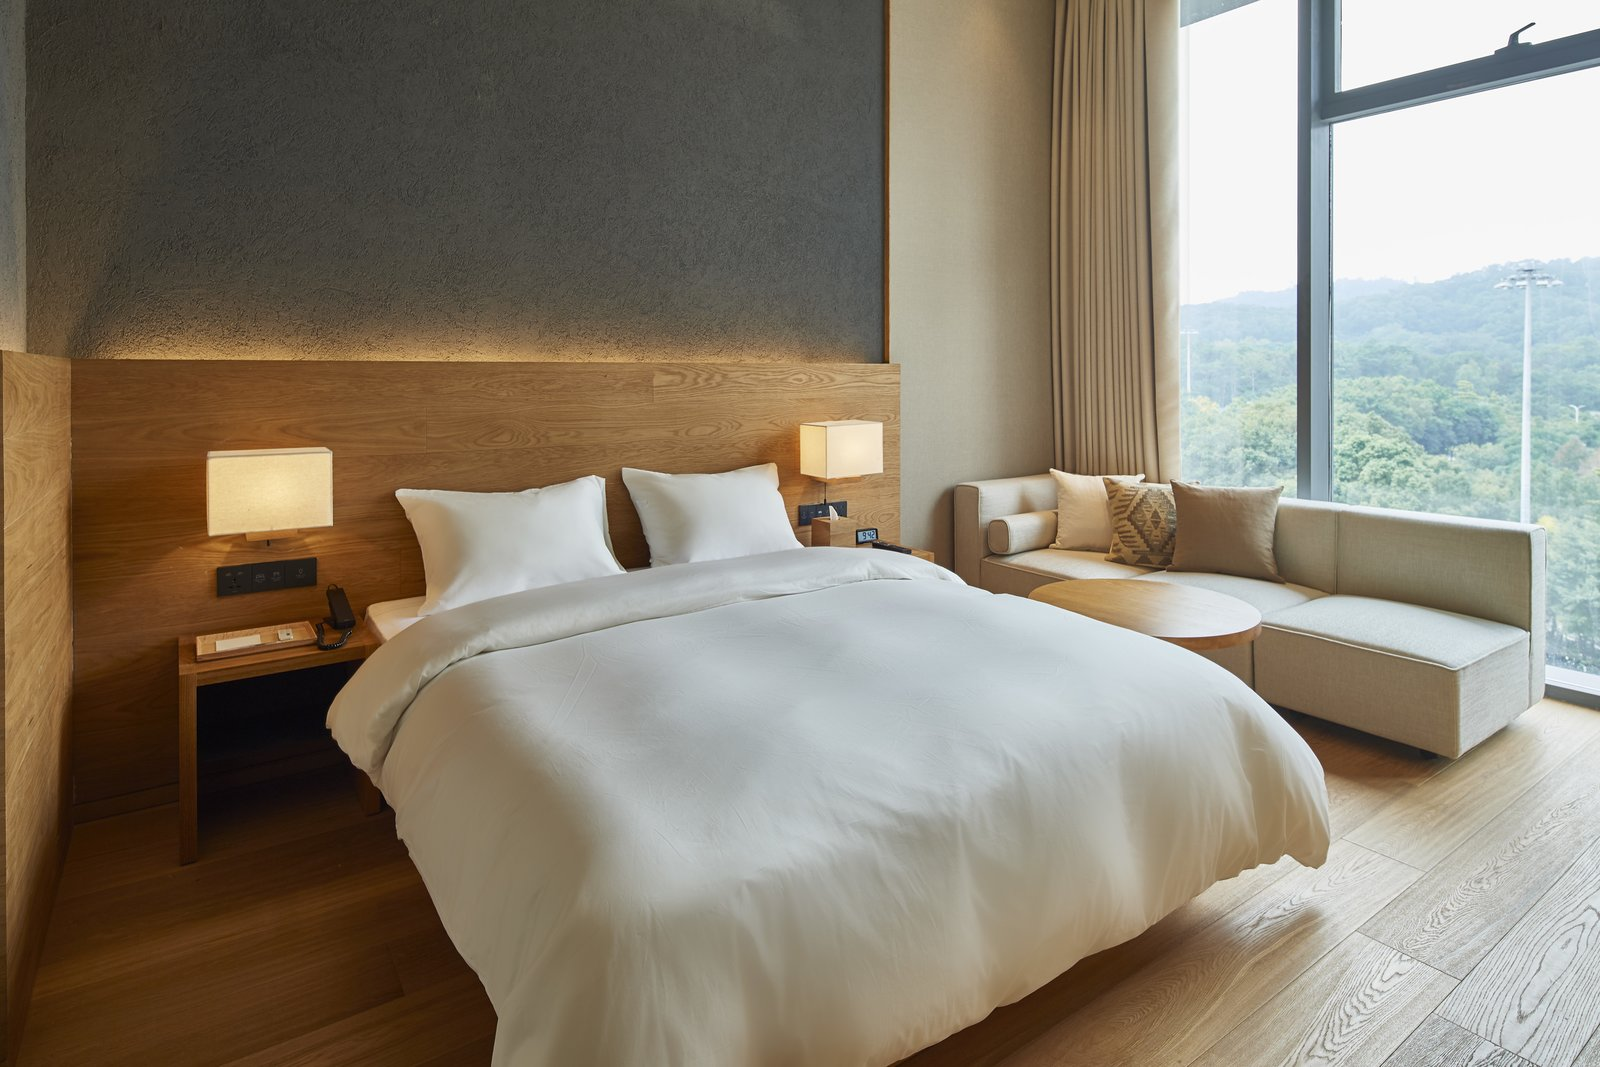 Be the First to Stay in the New Muji Hotel in Shenzhen